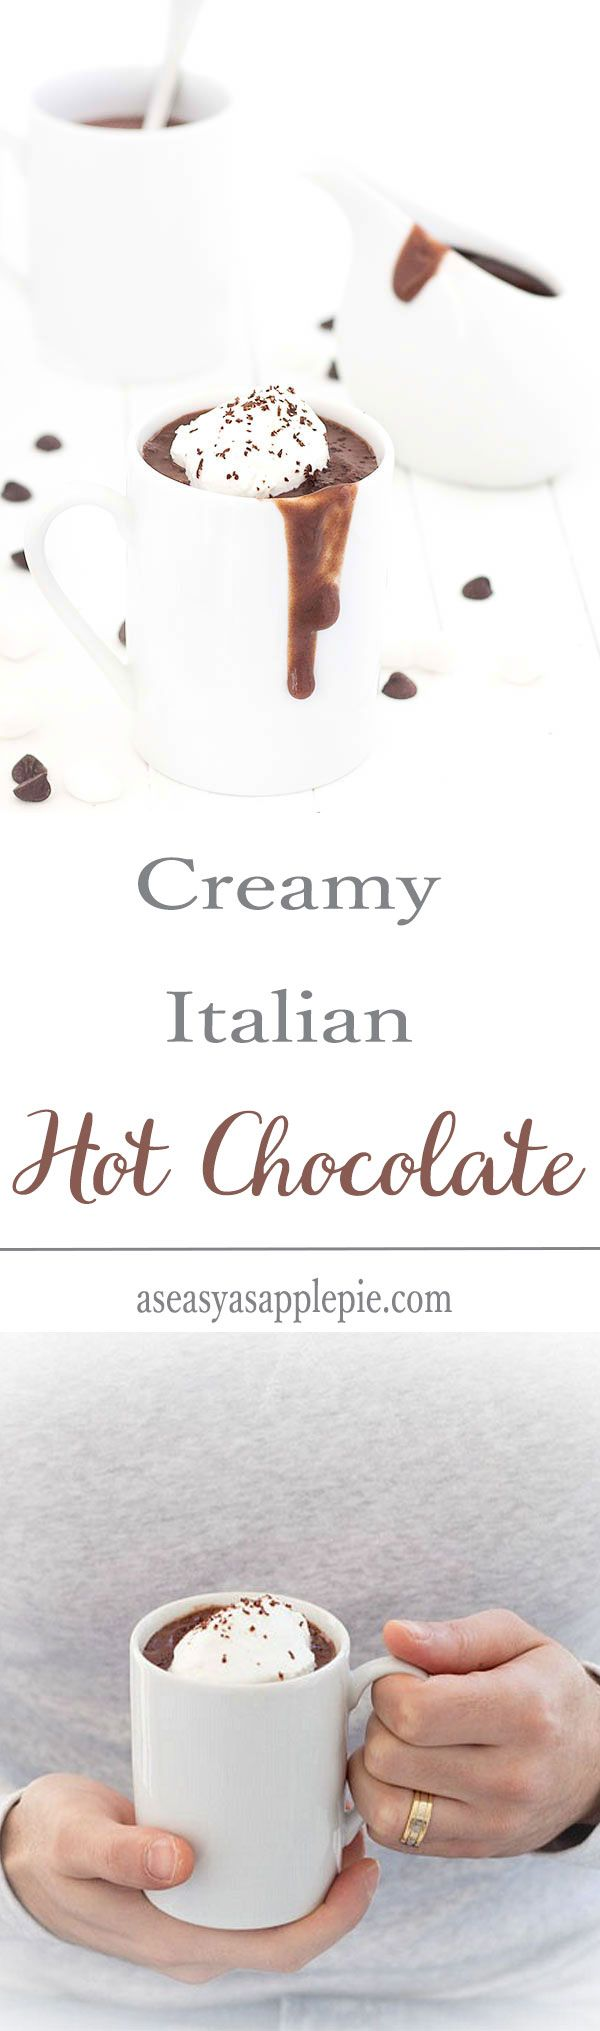 Have you ever tried Italian hot chocolate? It's the best hot chocolate in the word! Thick, creamy, decadent, rich...and only 116 calories!